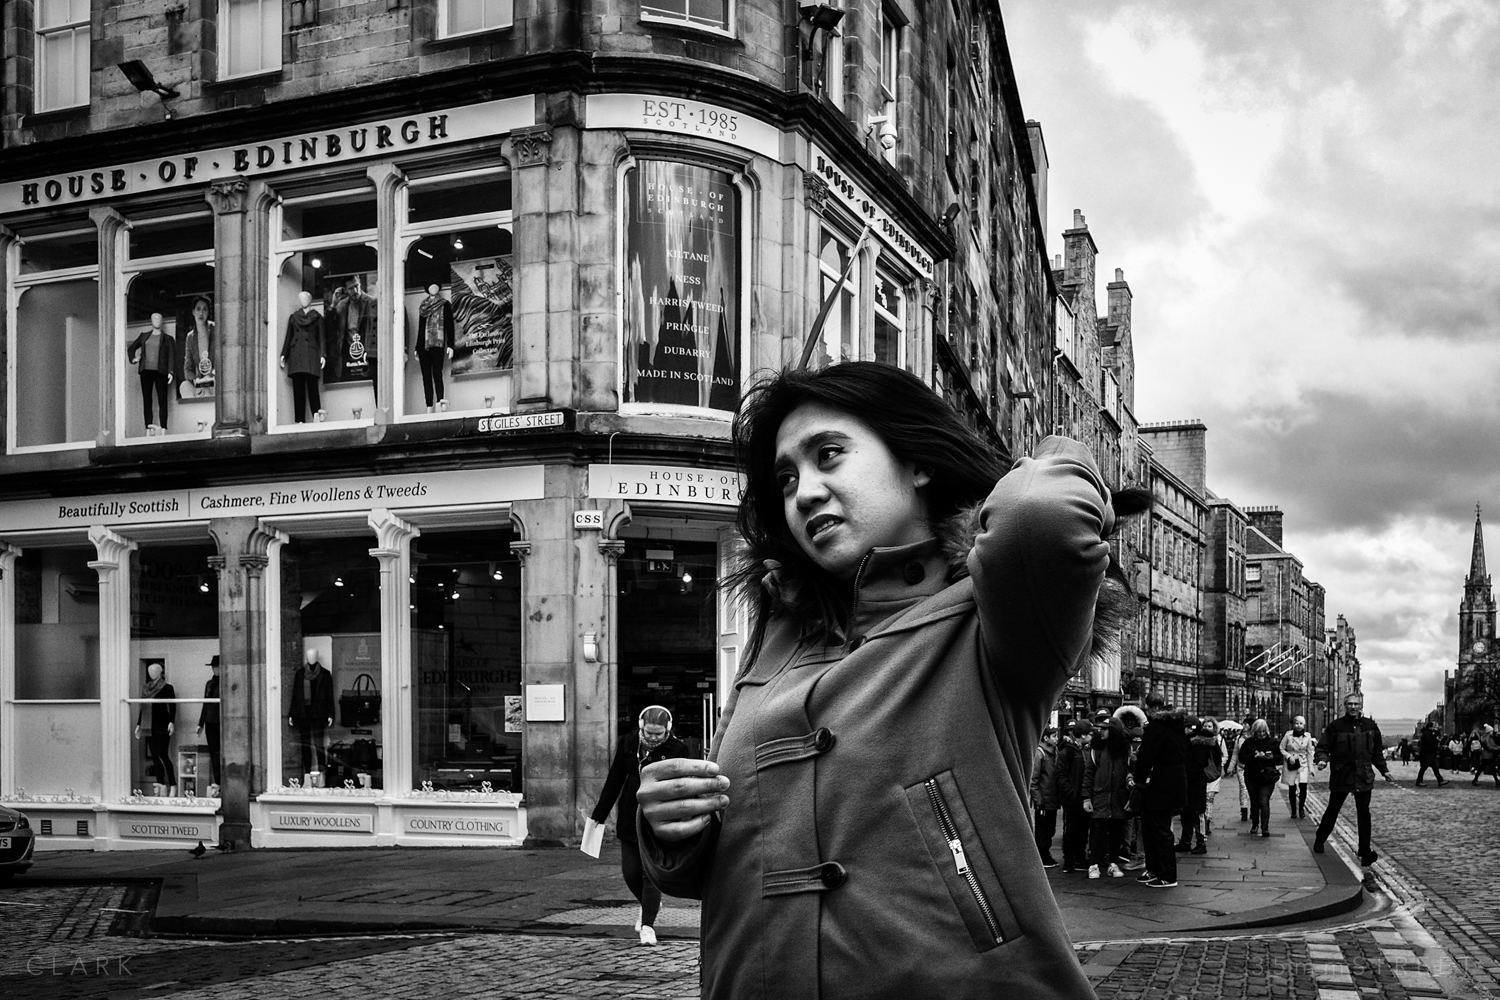 005_35mmStreet-Edinburgh-Street-Photography-20190404.jpg